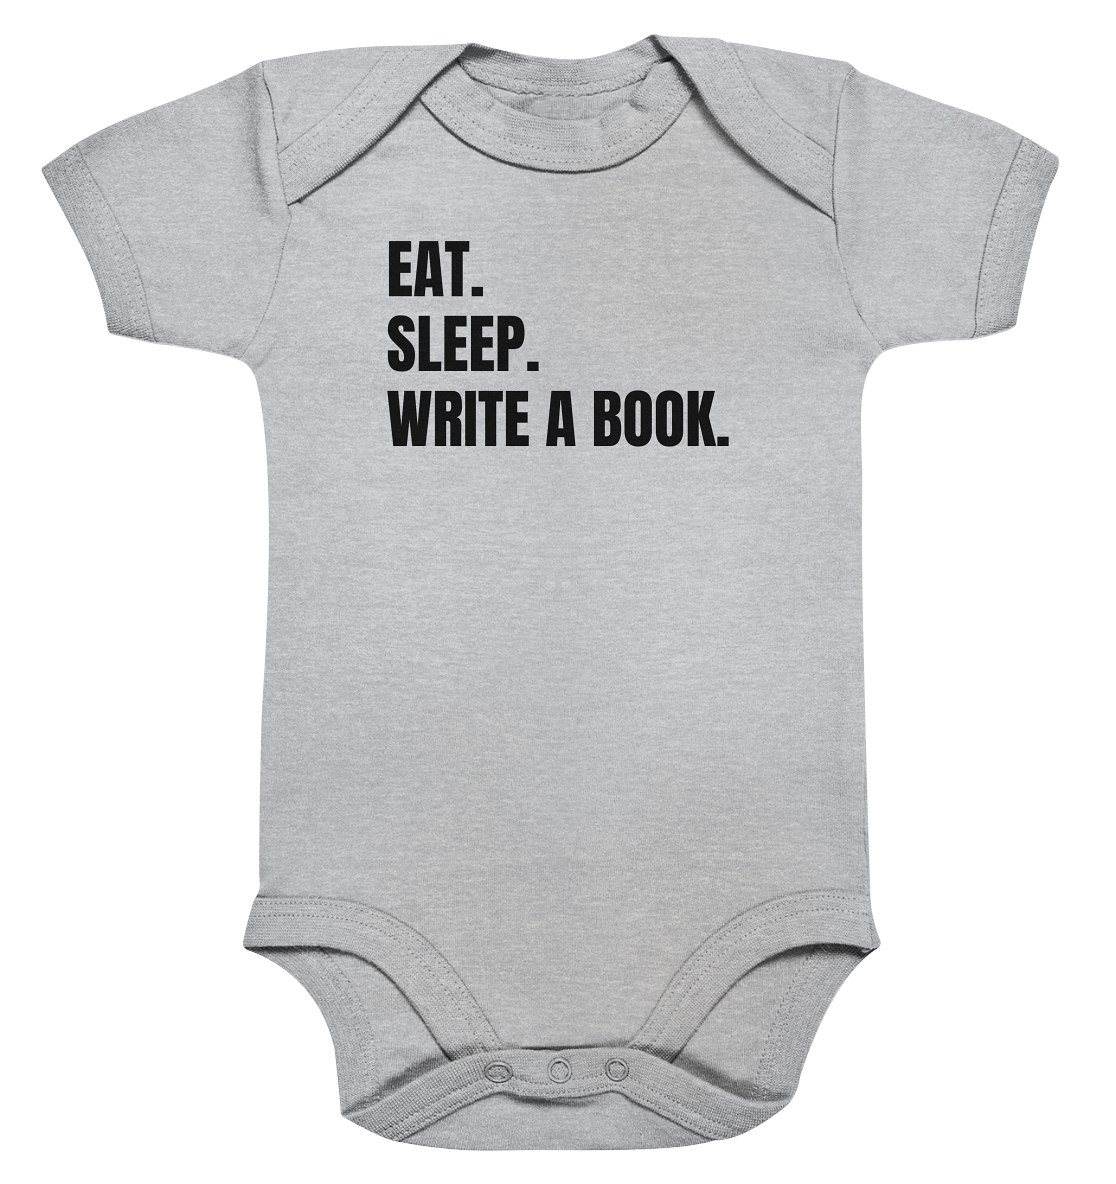 Eat. Sleep. Write a Book. - Baby Bodysuite